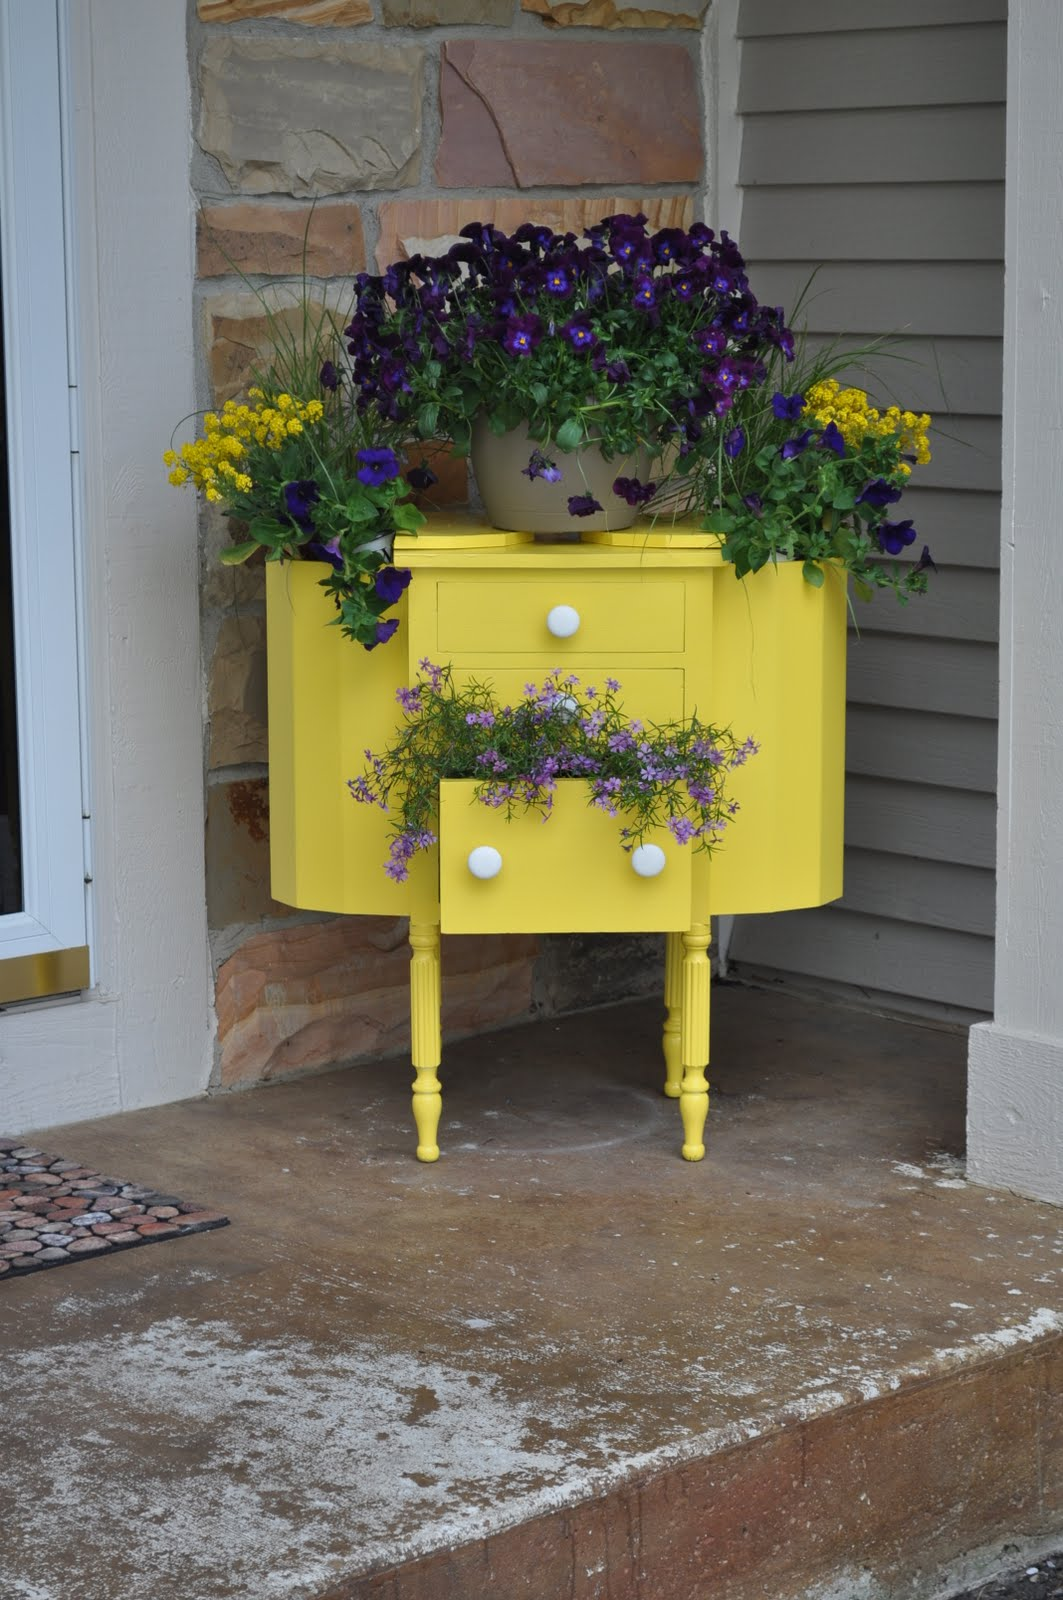 Blumen Couch 28 Creative Diy Ideas To Recycle Old Furniture Into An